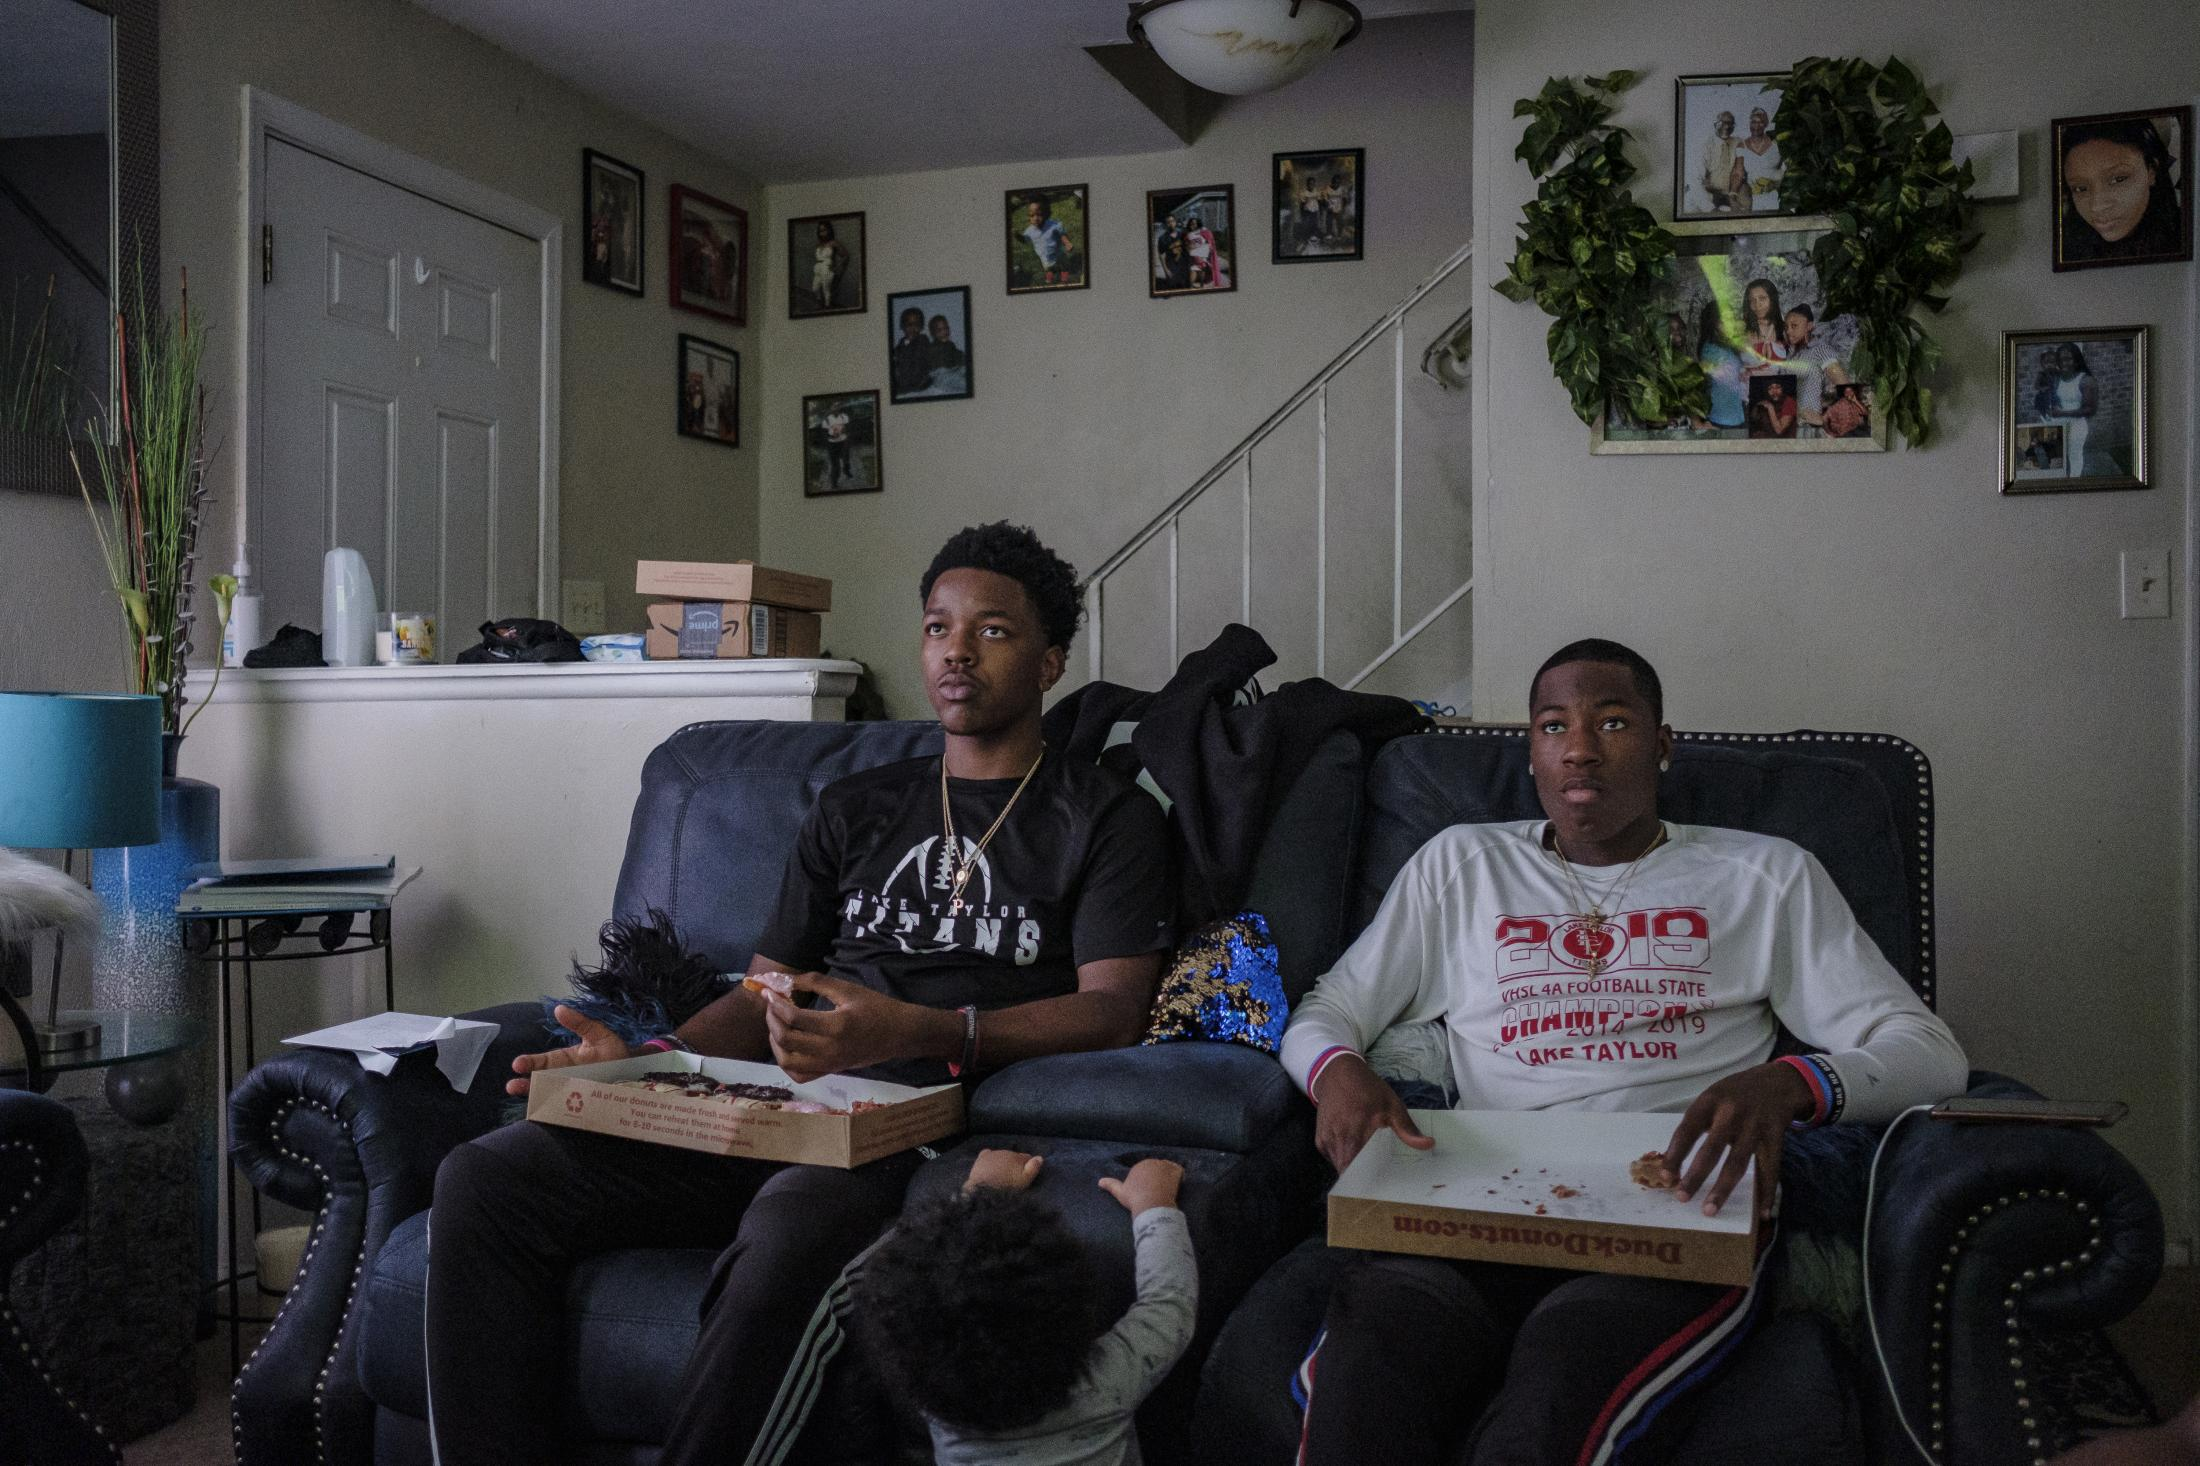 NORFOLK, VA – October 29, 2020: Pierre Royster and Jeff Foster, members of the Lake Taylor High School TITANS, at Pierre's home eating and playing video games. Due to the COVID-19 pandemic, football games were canceled at Lake Taylor High School in Norfolk, VA, leaving the TITANS members with plenty of free time. Carlos Bernate / The Undefeated